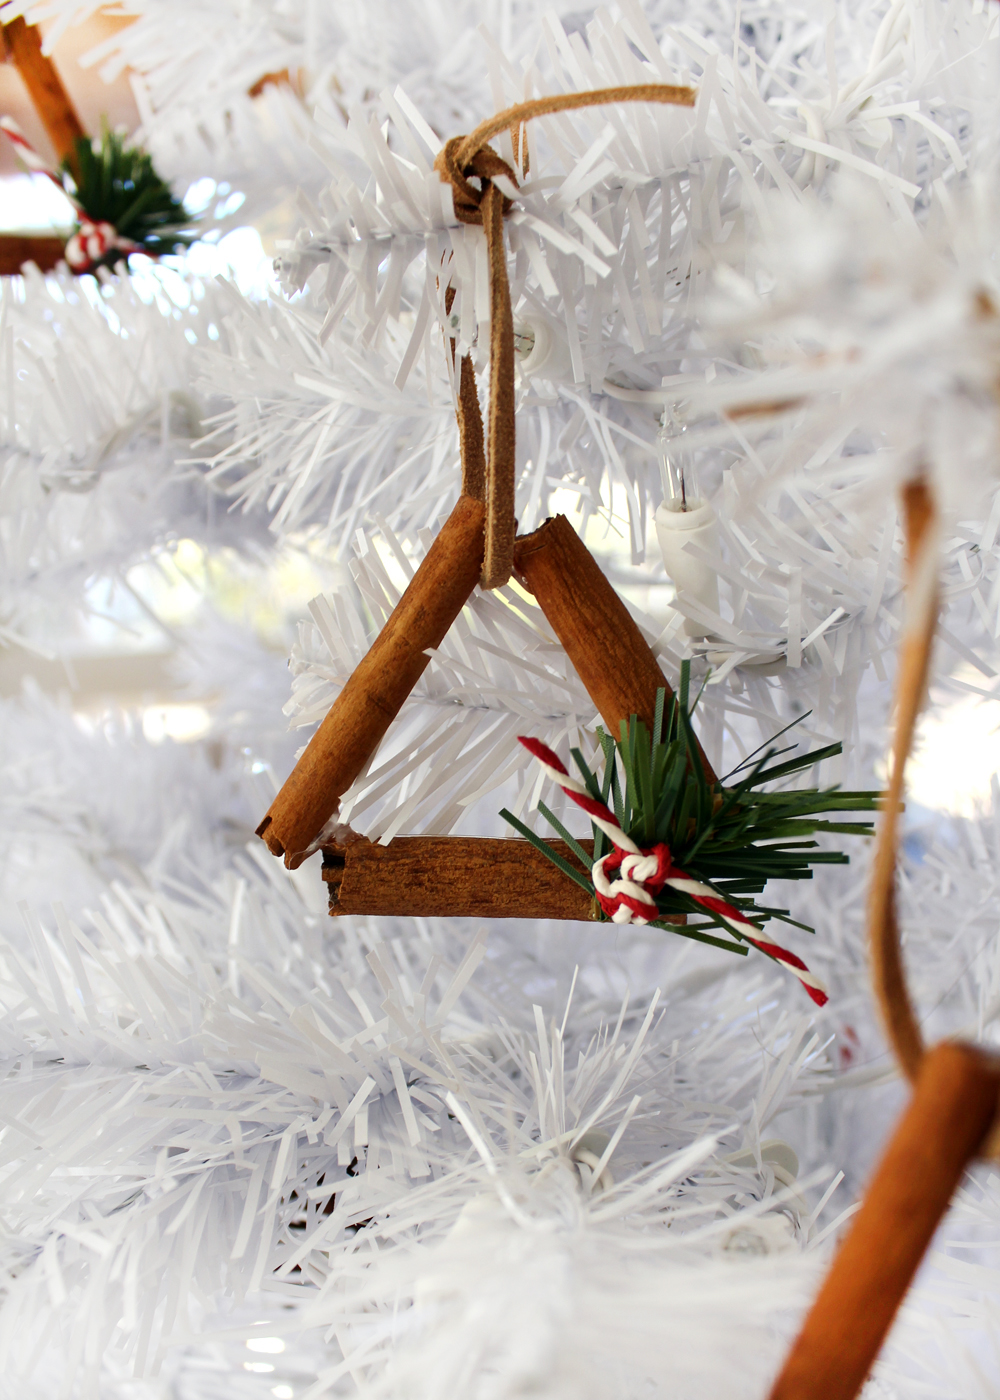 Cinnamon stick ornaments for your tree this Christmas